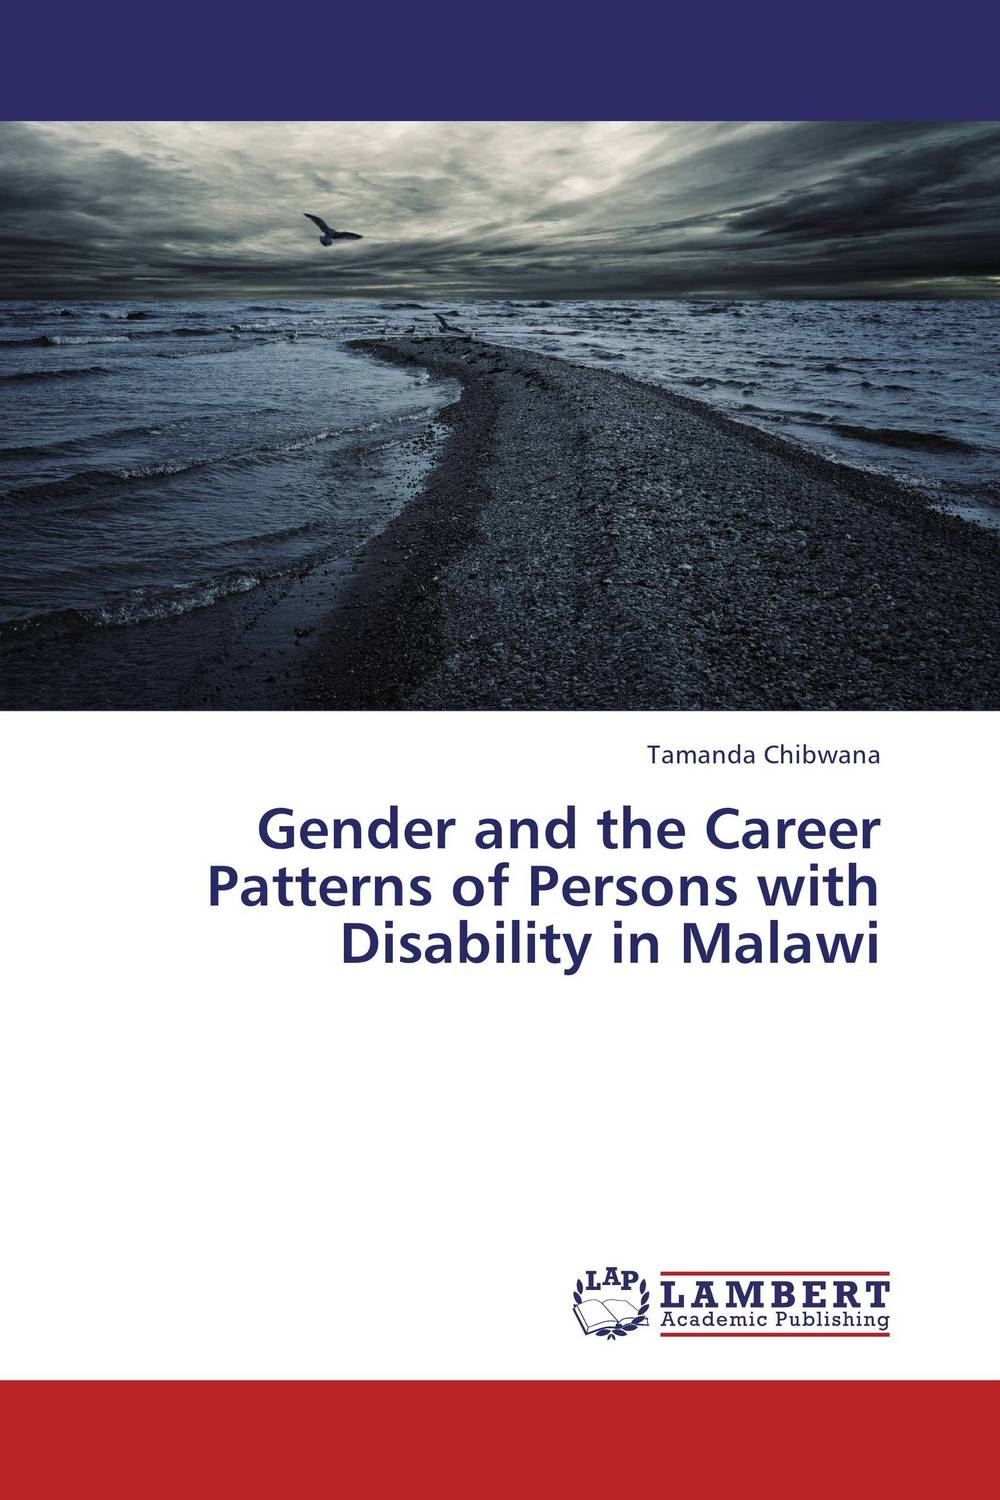 Gender and the Career Patterns of Persons with Disability in Malawi the assistant principalship as a career